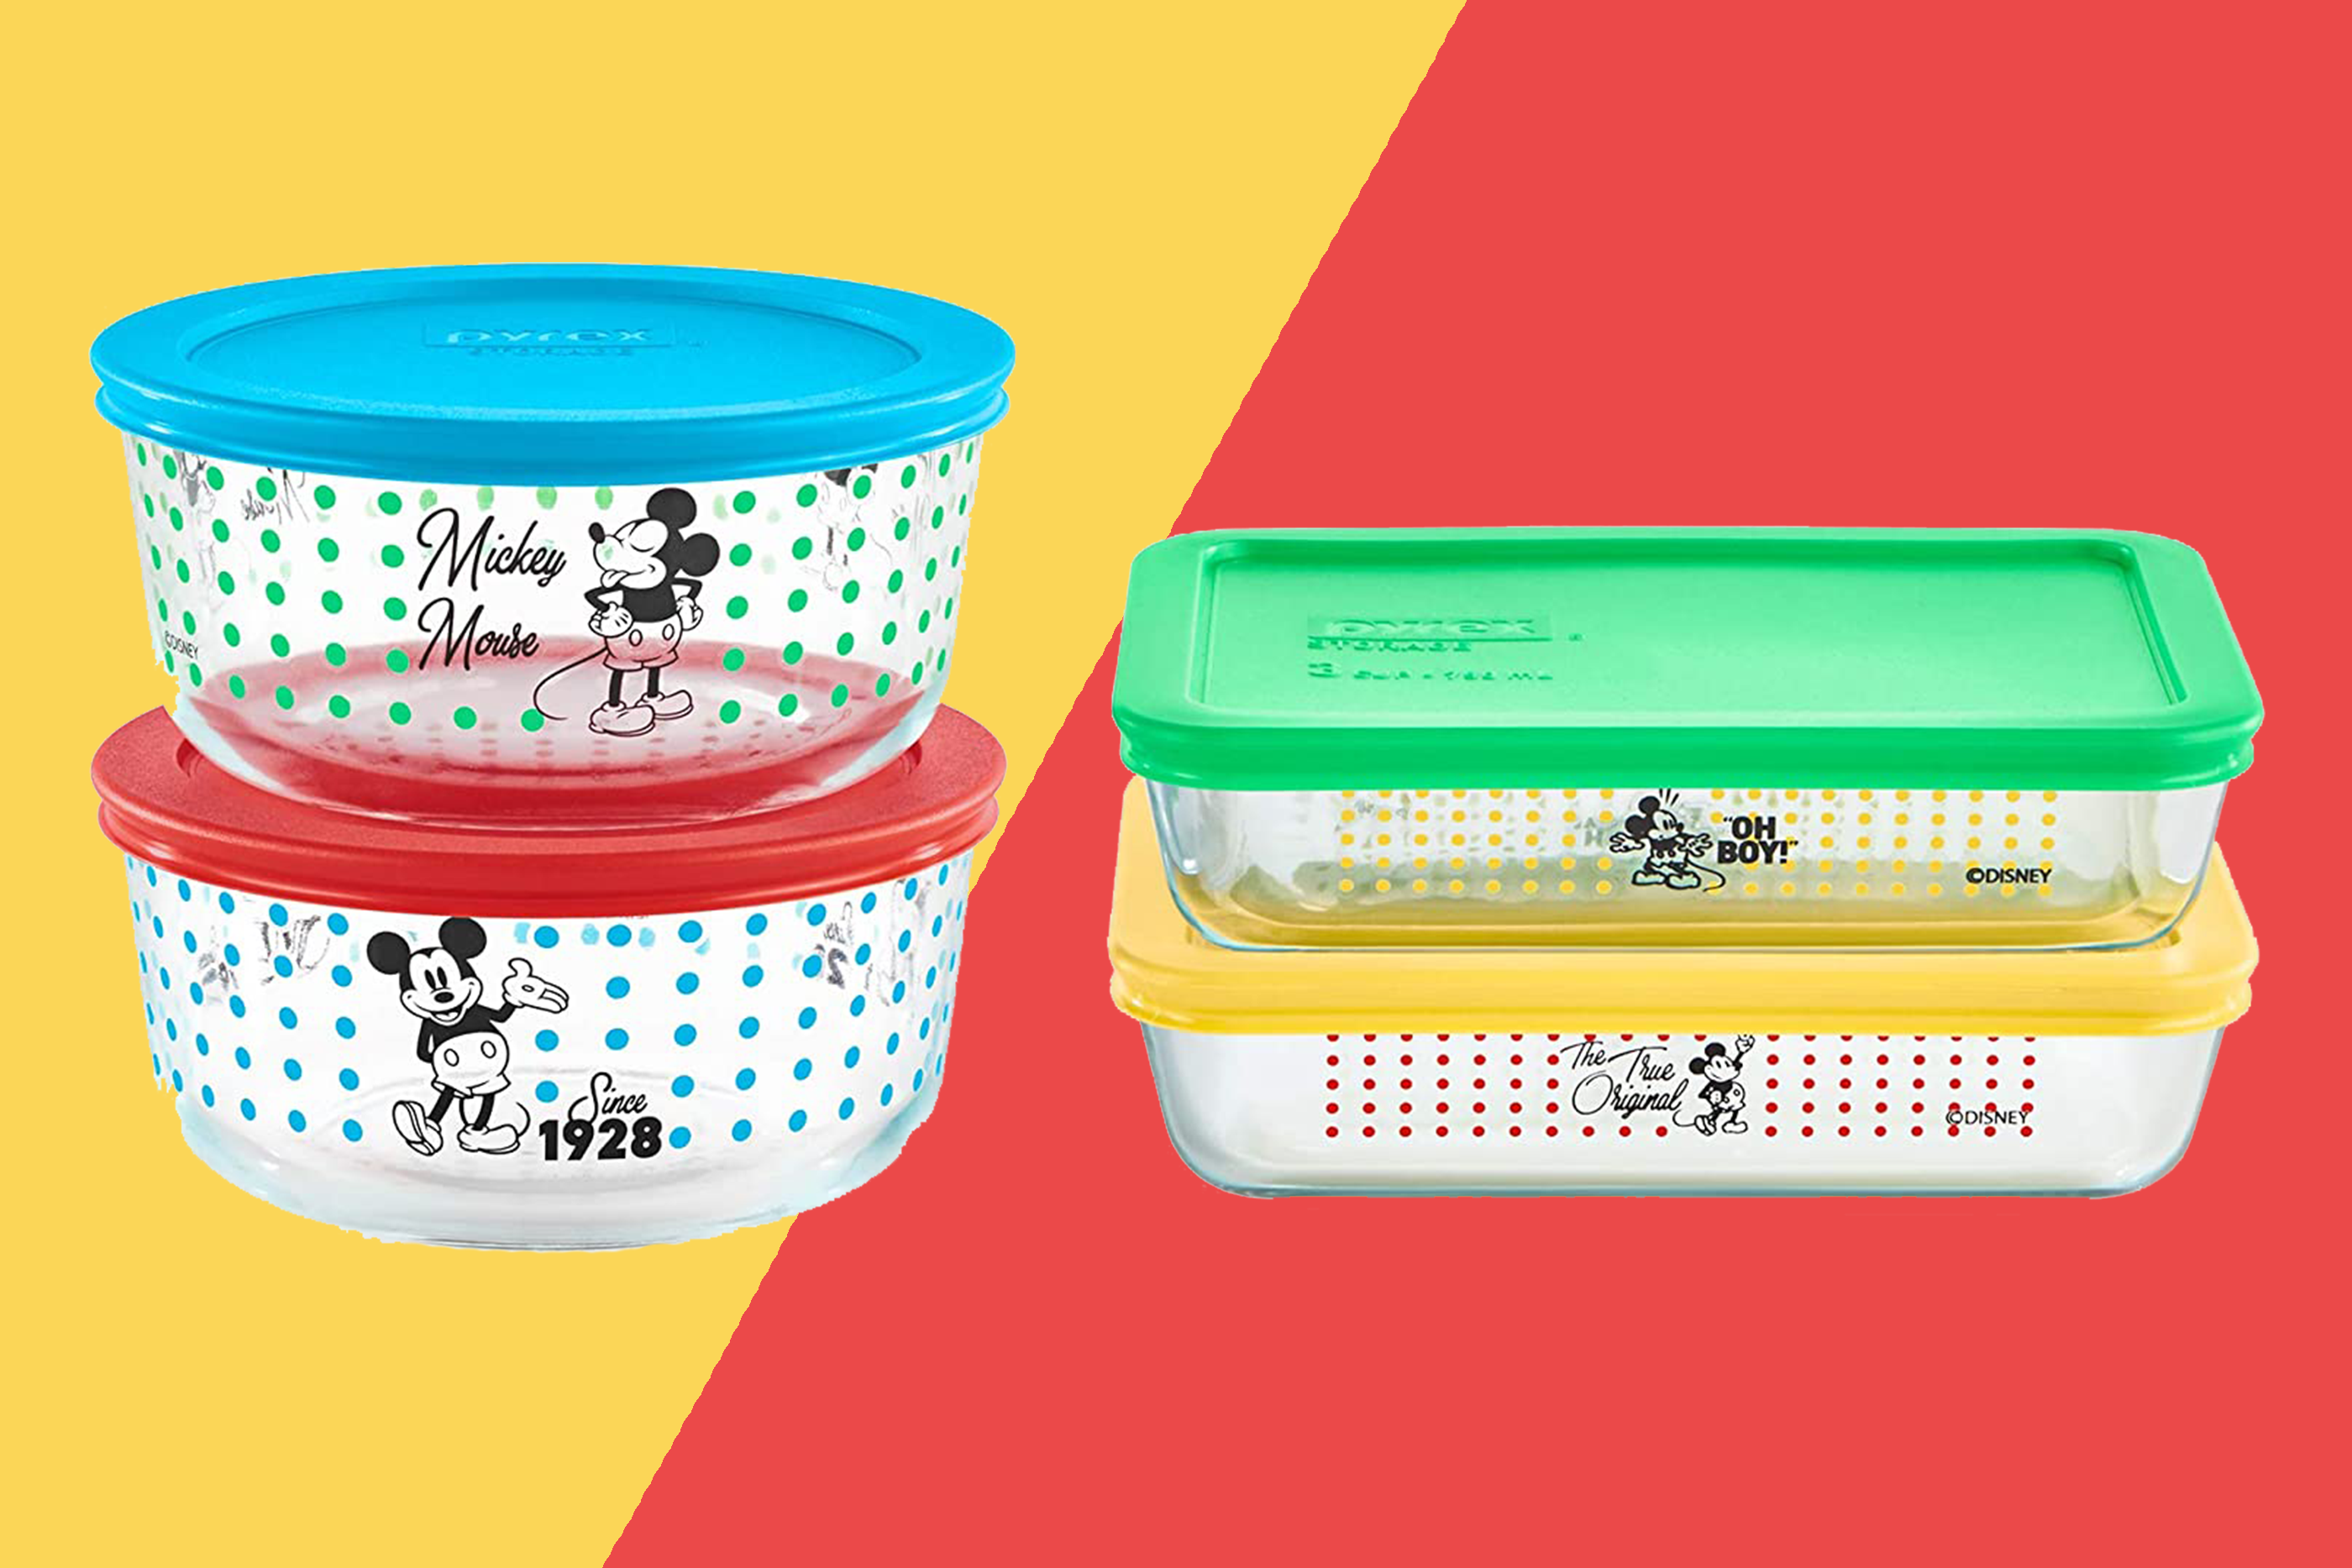 pyrex mickey mouse bowls stacks on a two-tone background